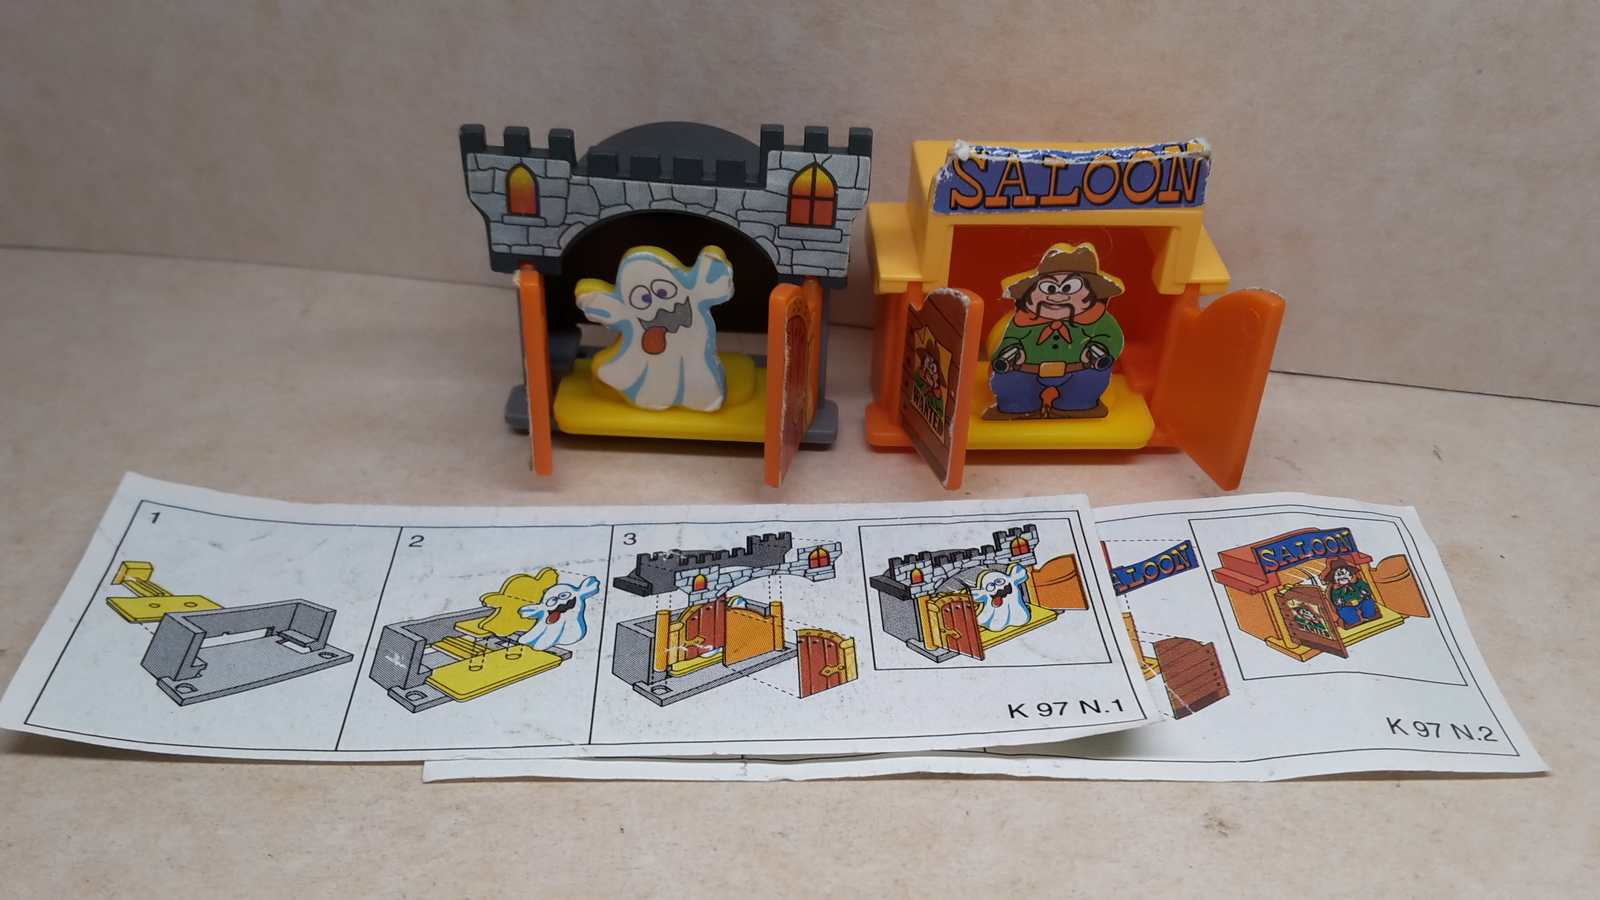 Kinder - K97 1-2 Castle and saloon - complete set + 2 papers - surprise eggs - $2.50